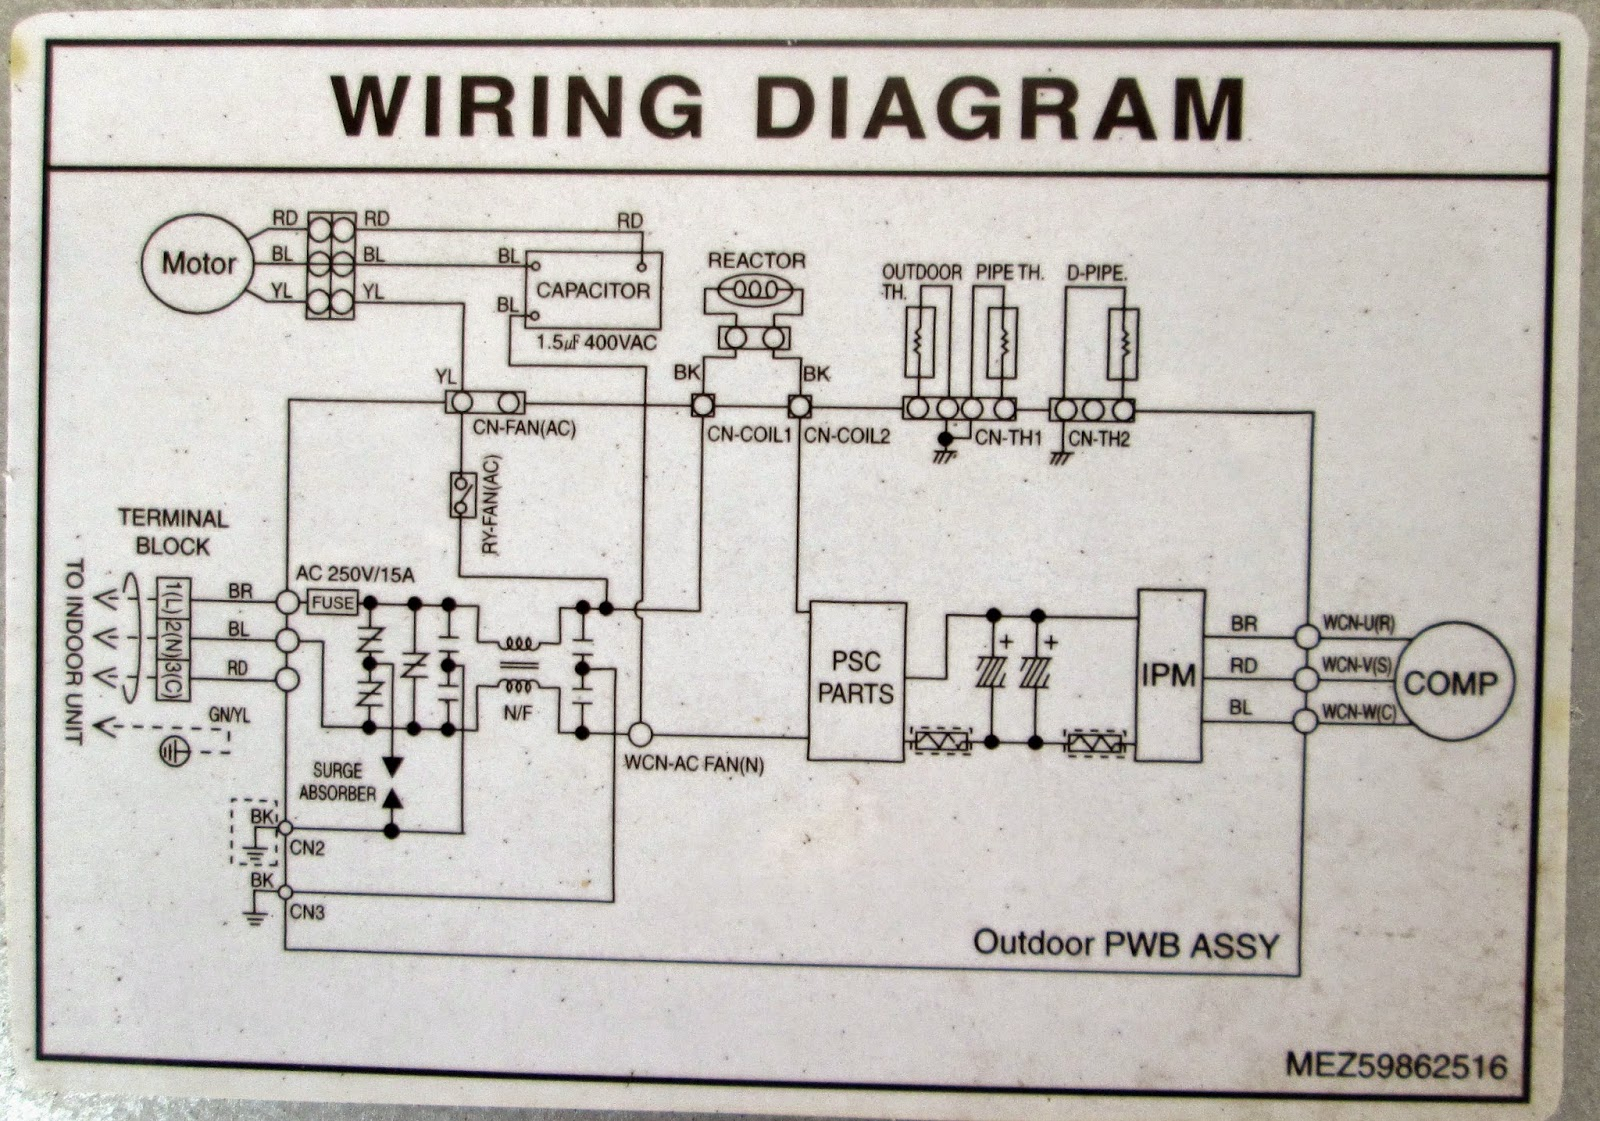 WD%2Bsharp%2Binverter%2B2 28 [ inverter aircon wiring diagram ] electrical wiring lg split ac wiring diagram at bayanpartner.co